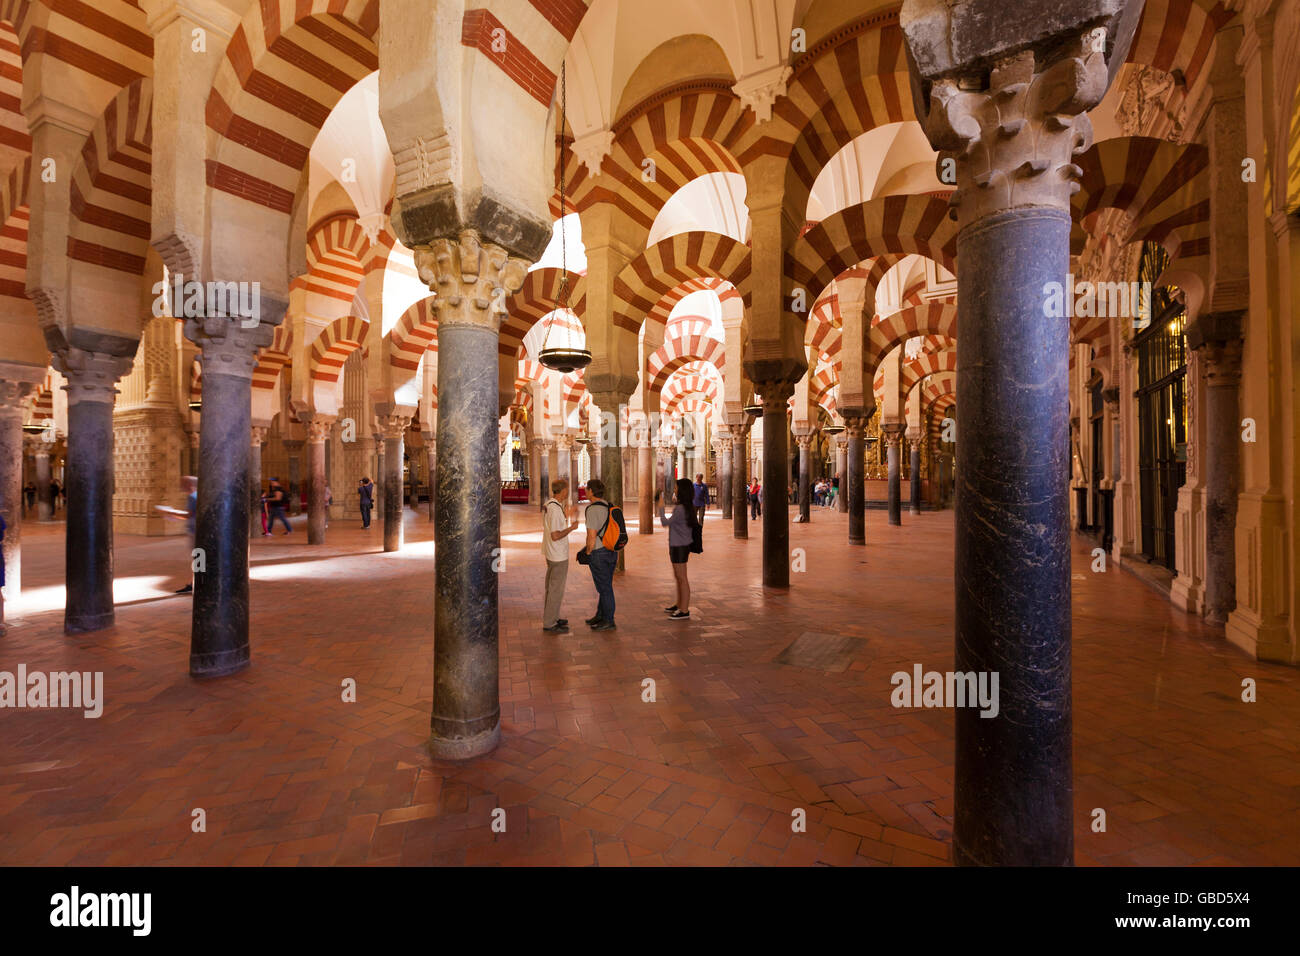 Visitors below the arches inside the Mosque-Cathedral of Córdoba, Spain Stock Photo